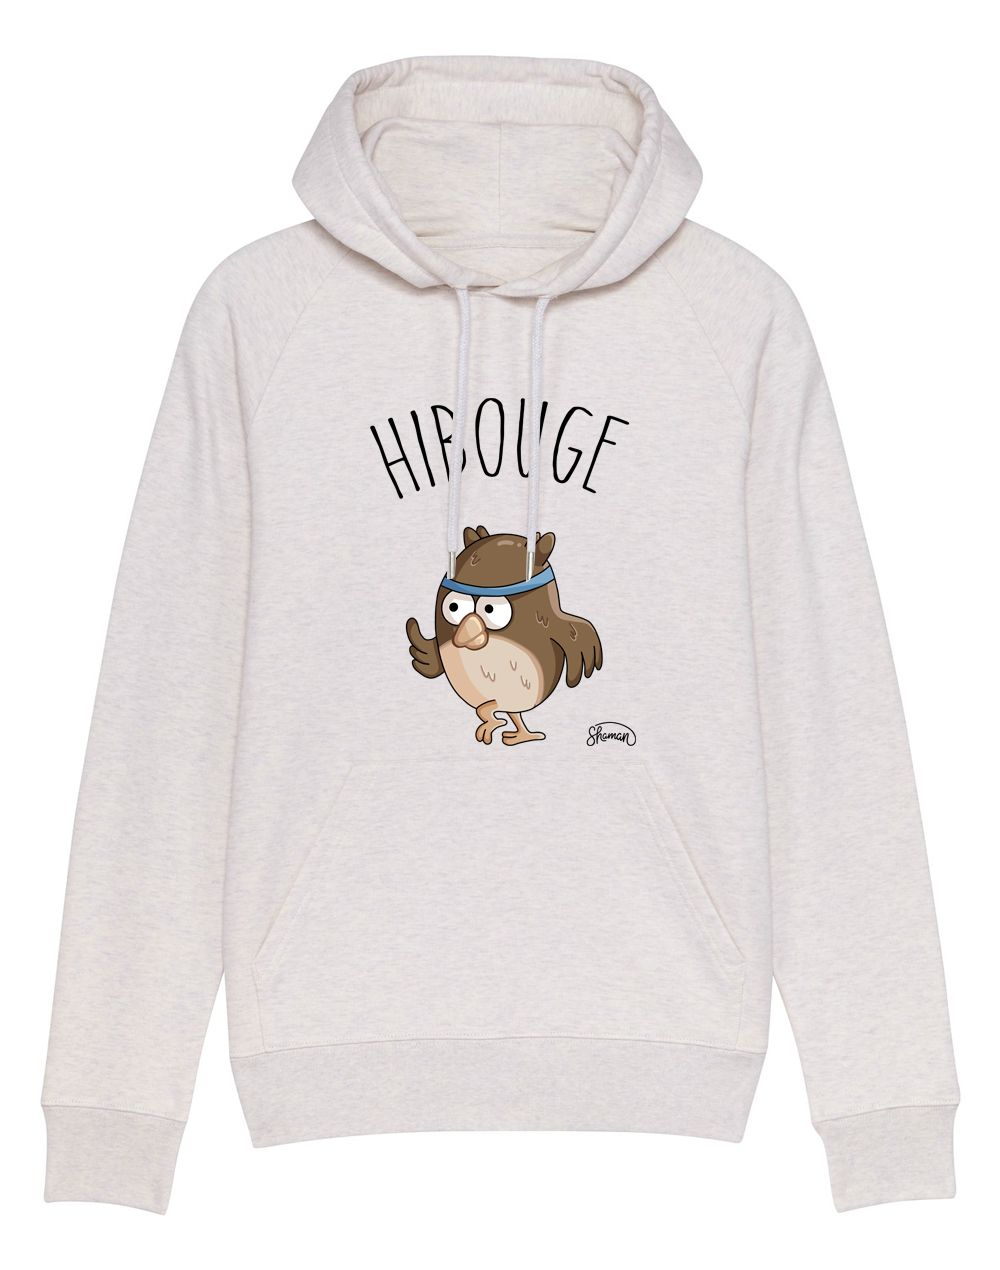 Sweat capuche Hibouge